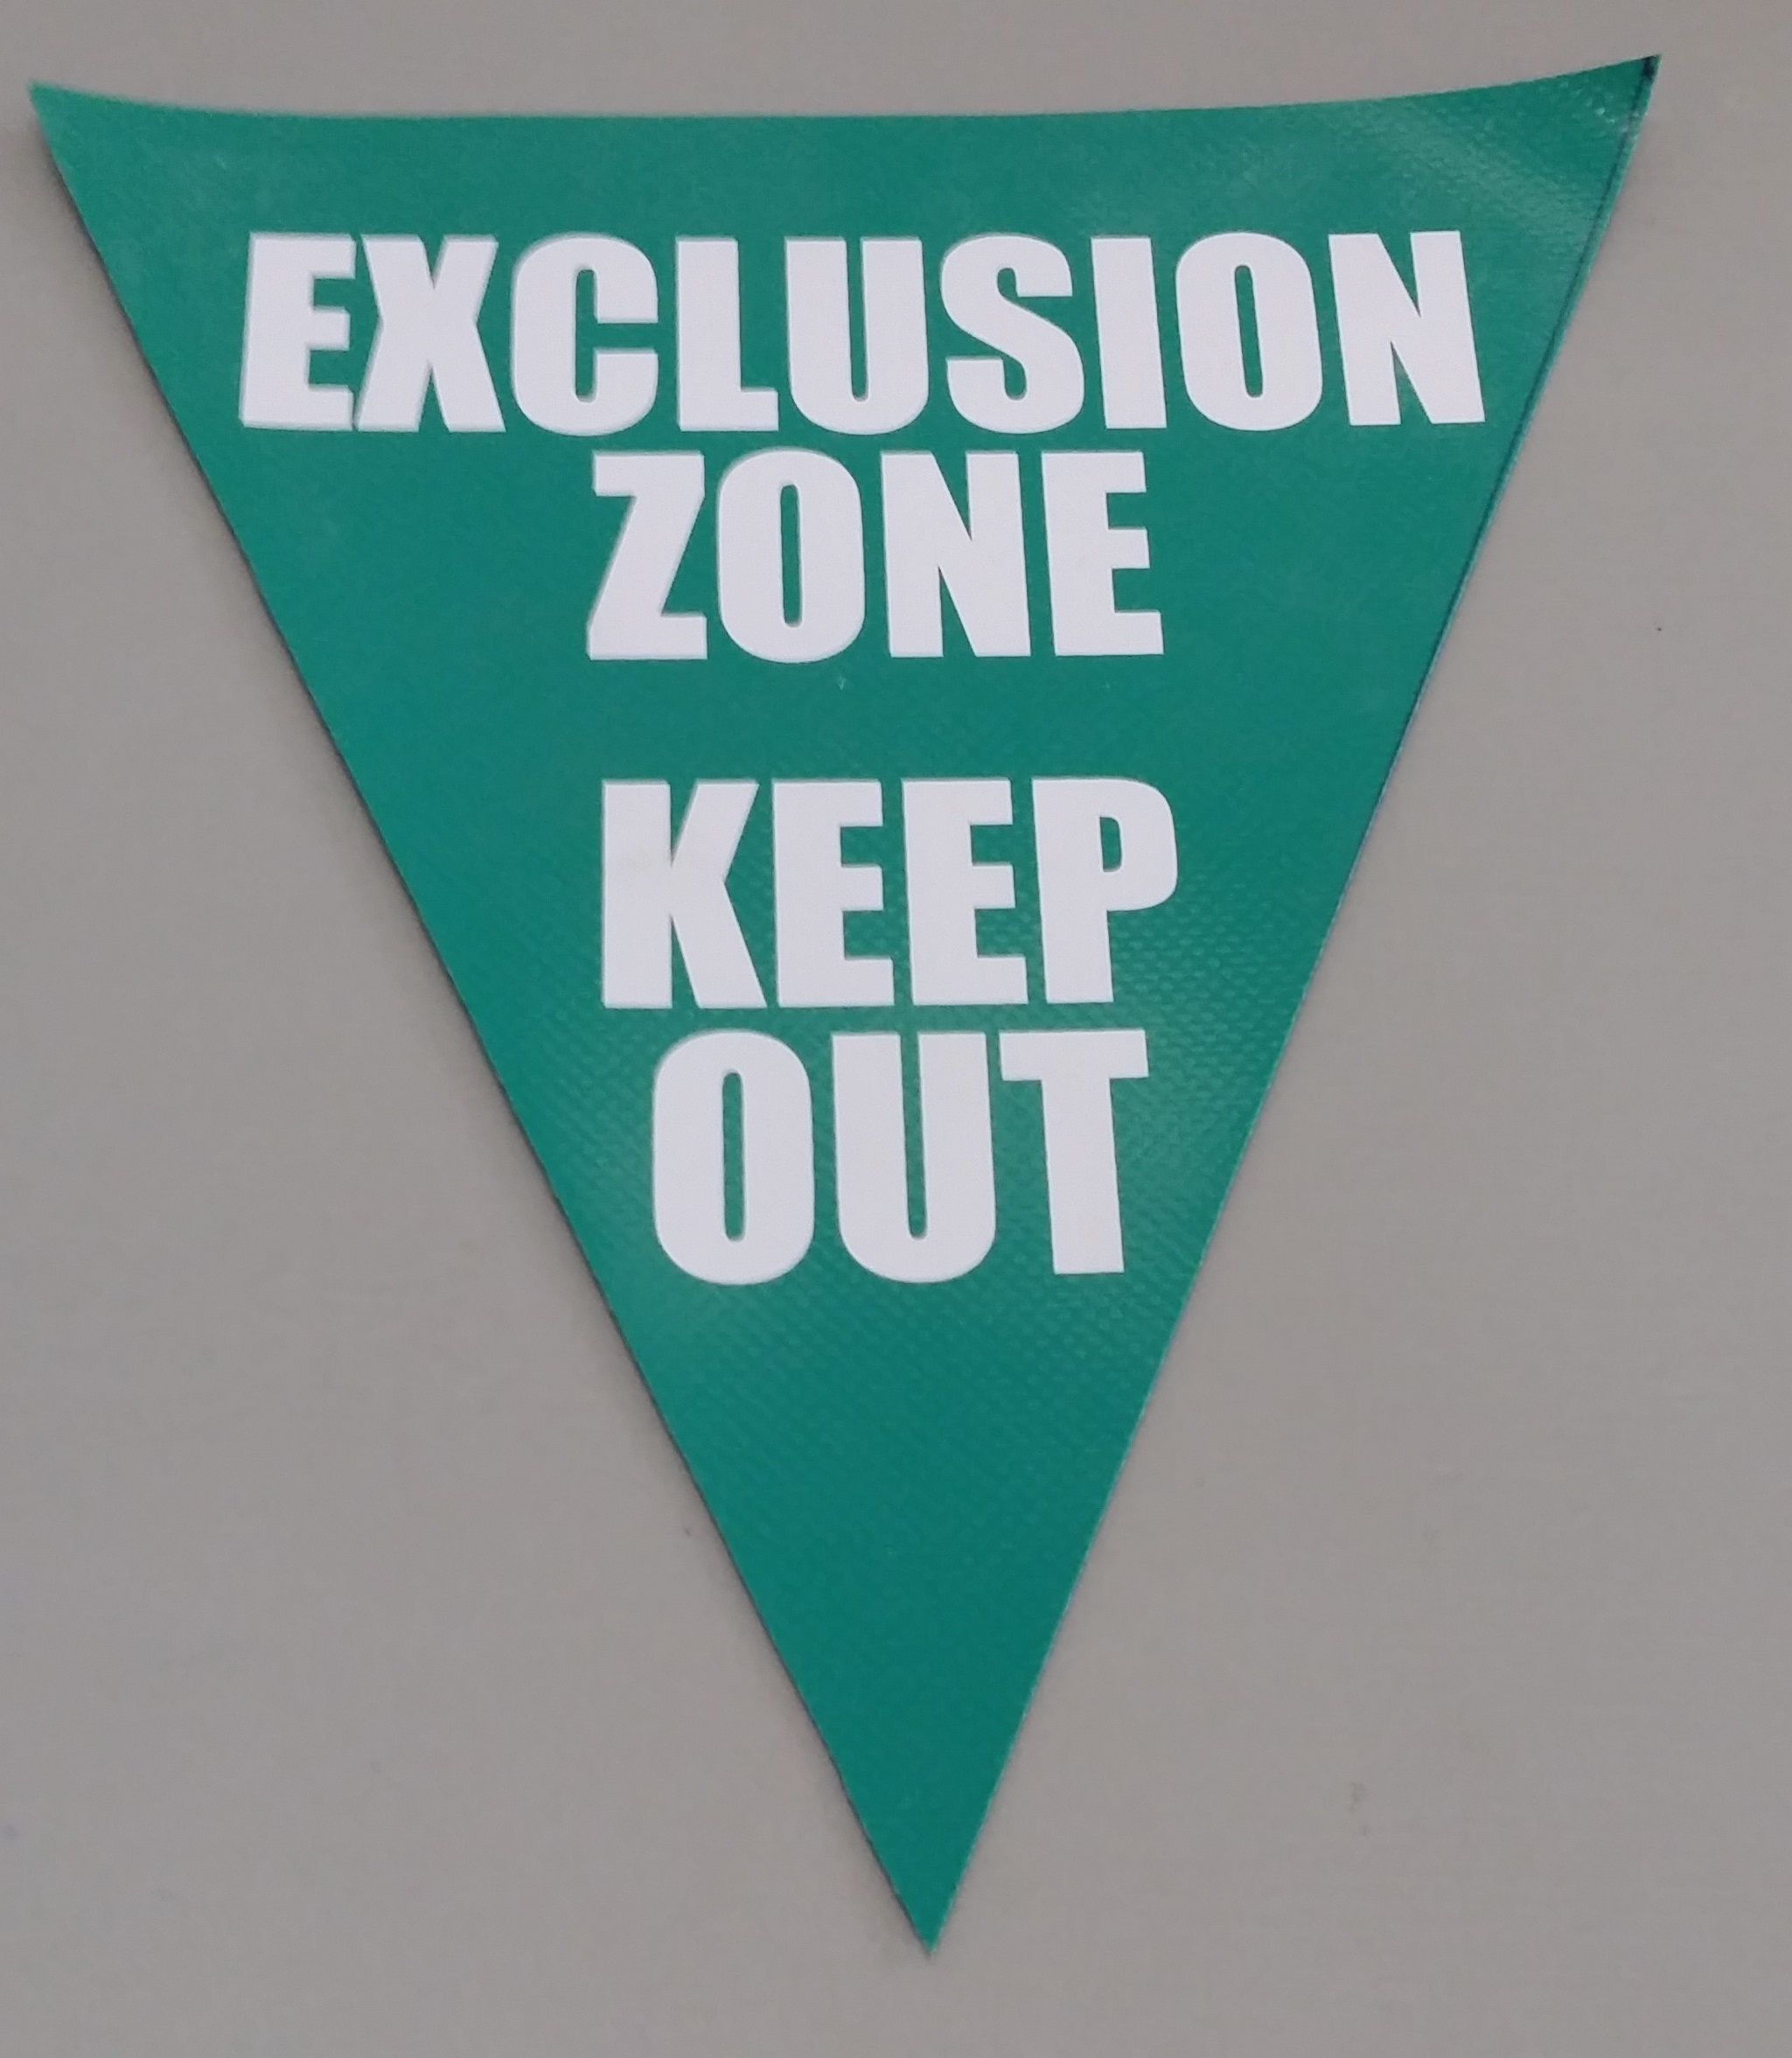 Exclusion Zone Keep Out(green with white print)